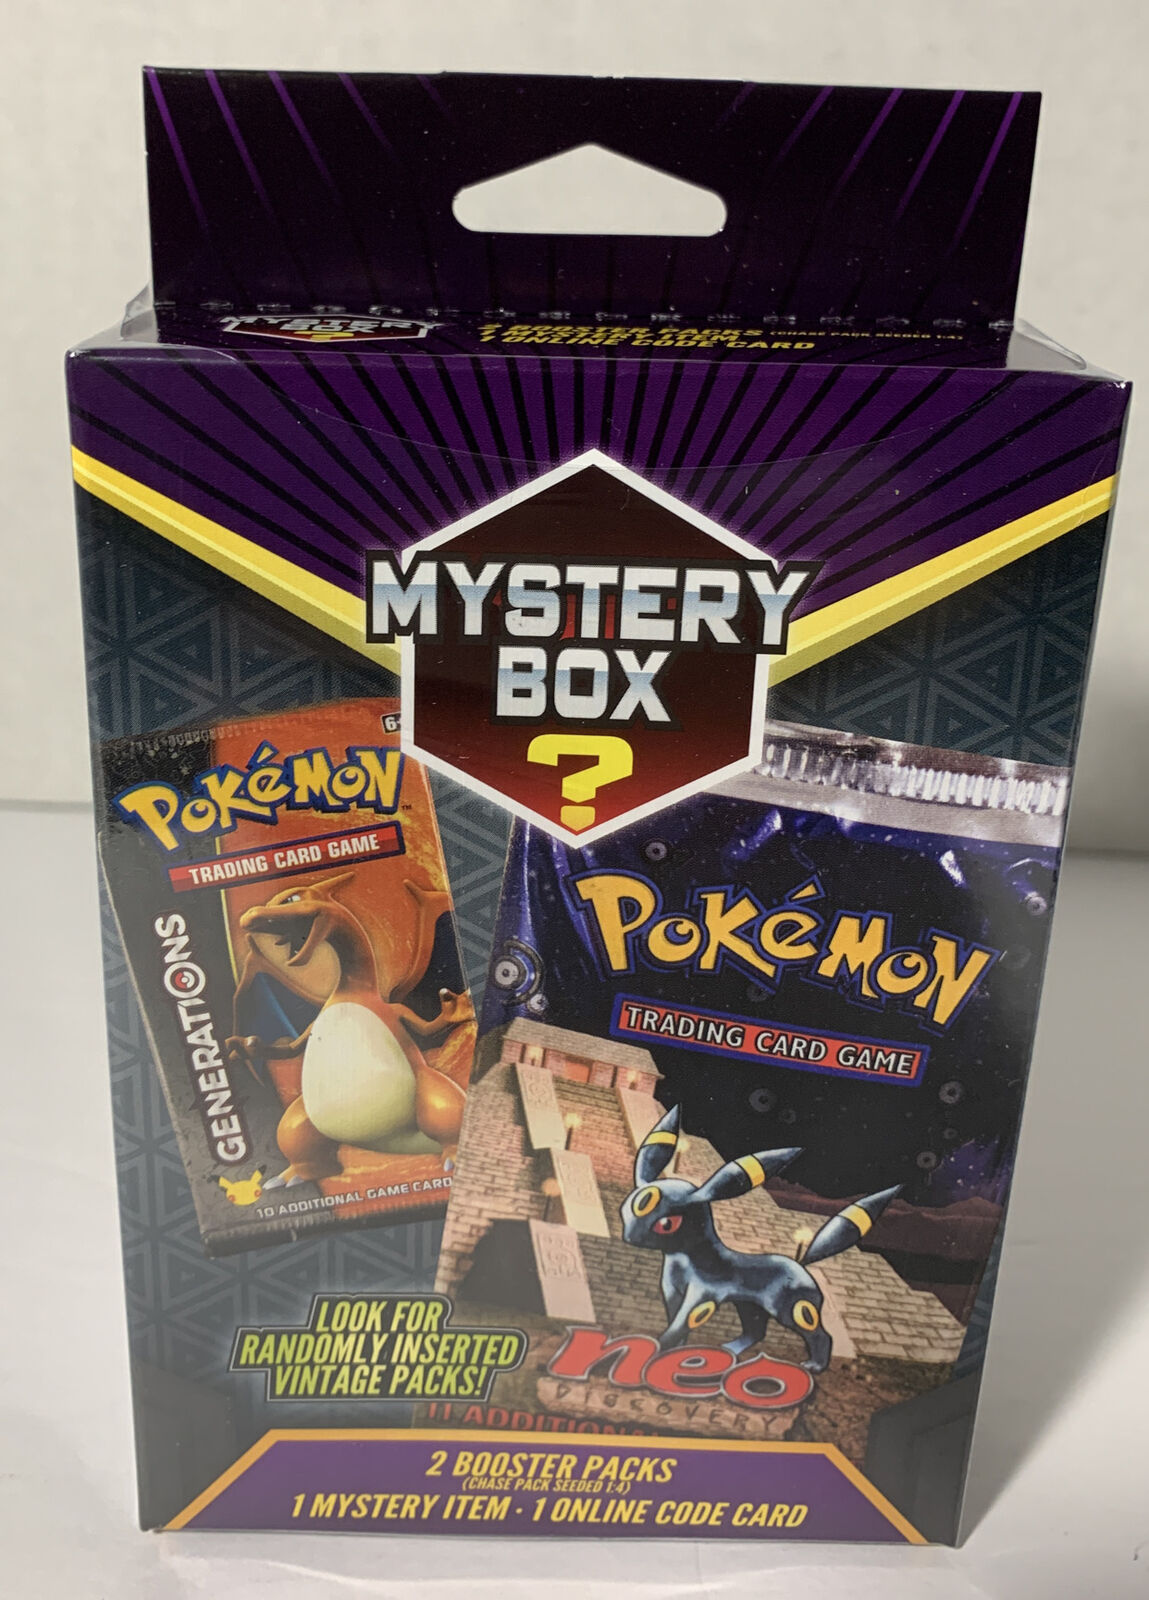 1x Mystery Hanger Box - Pokemon (LIVE BREAK)